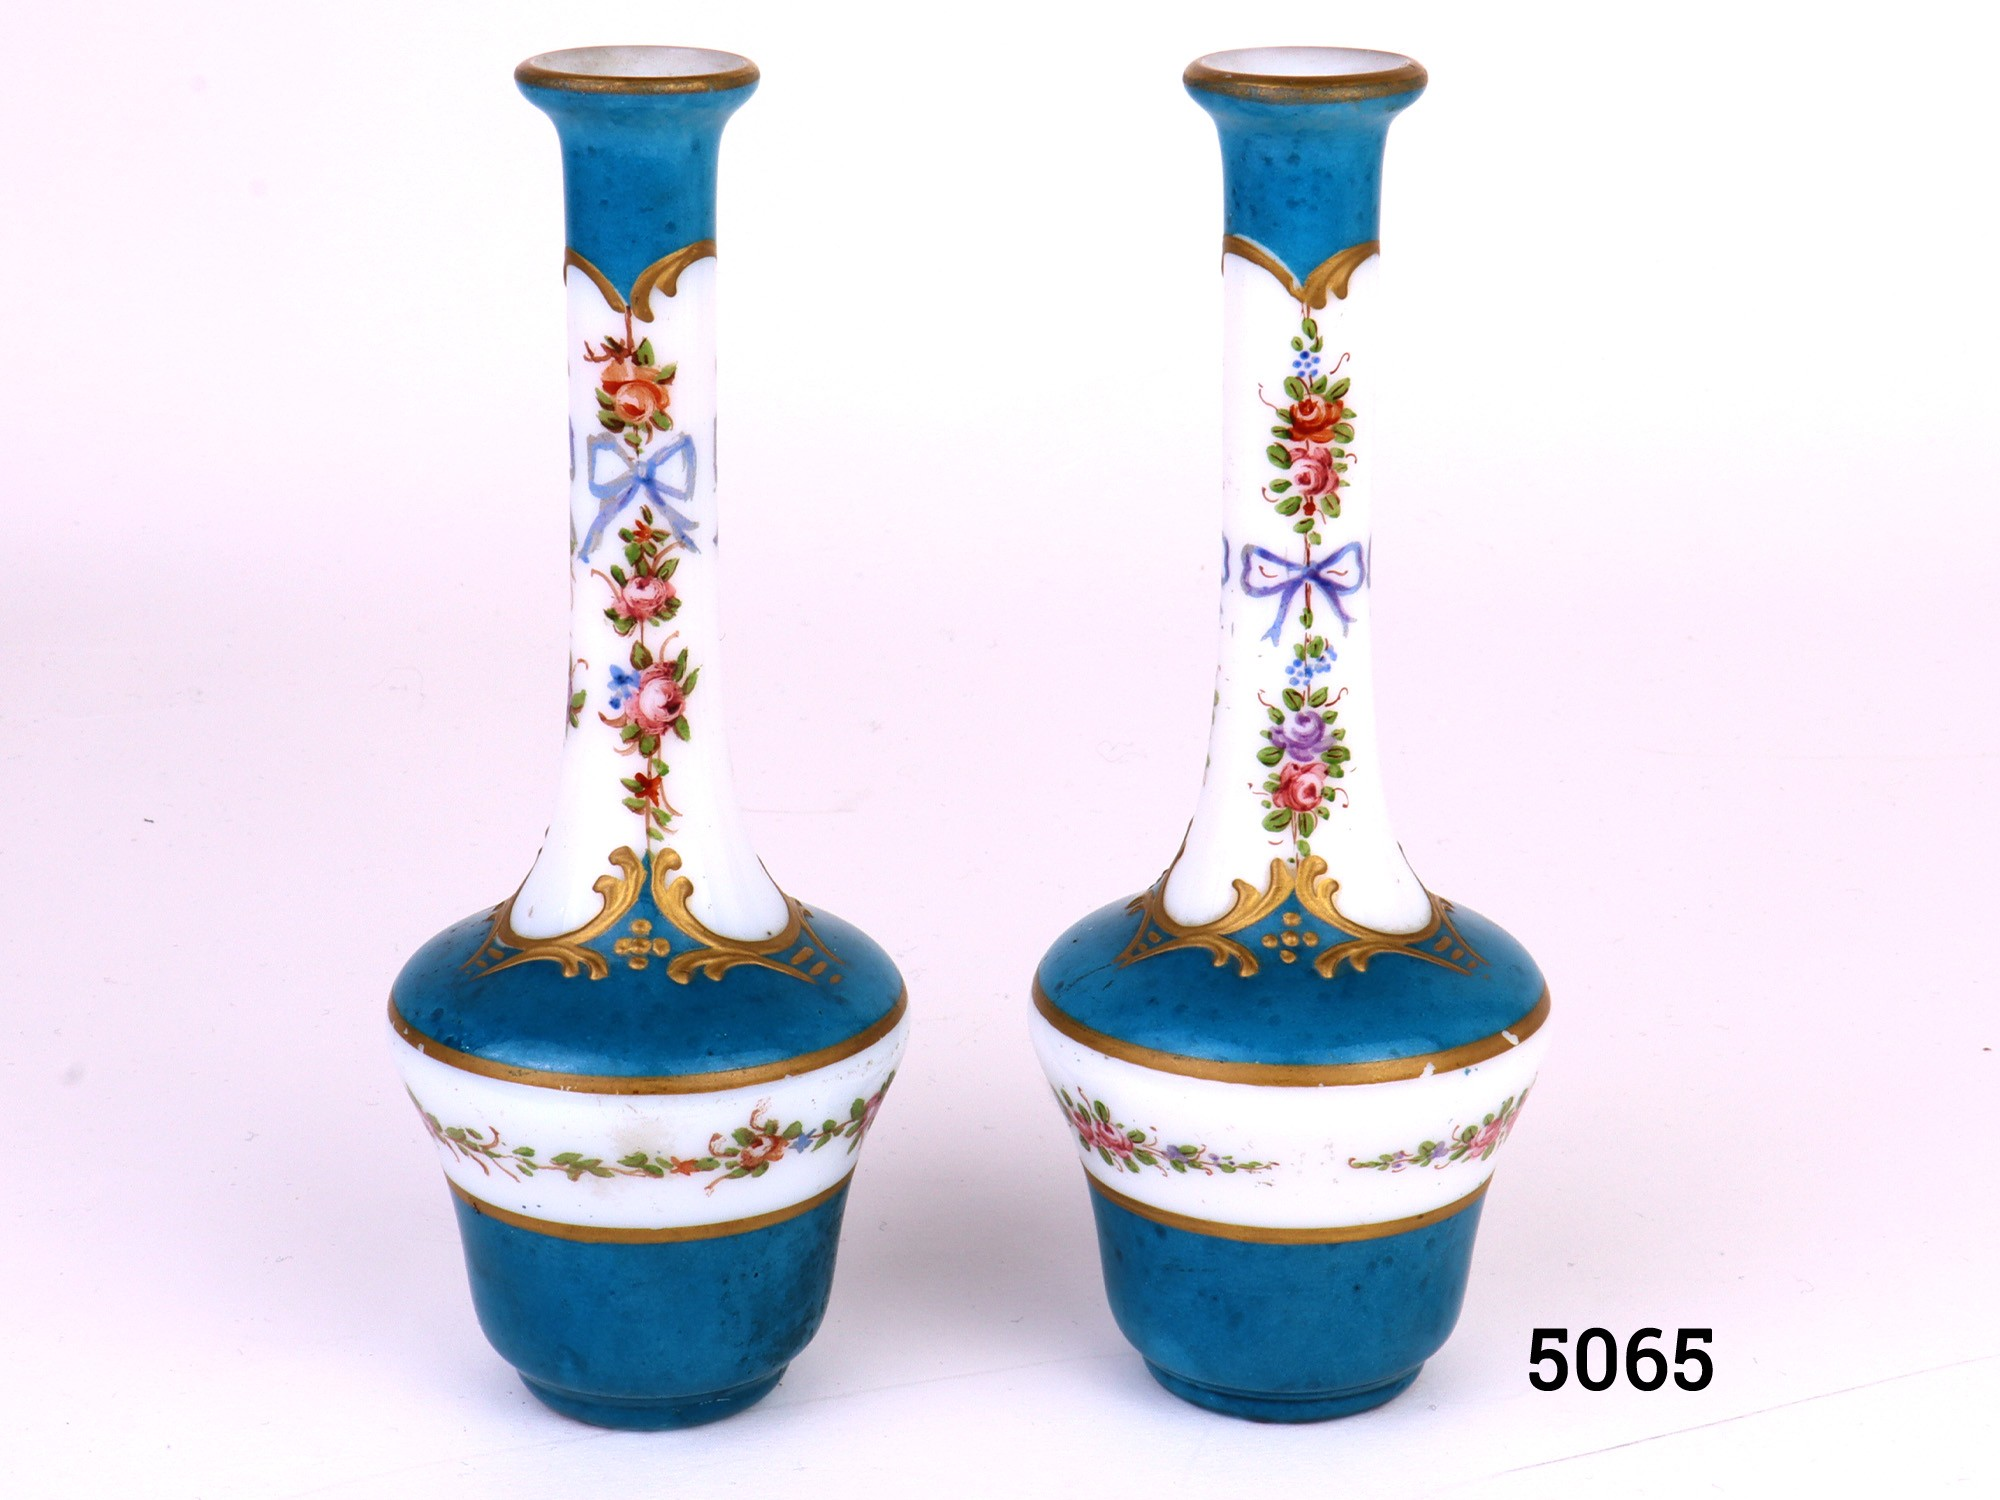 Antique pair of miniature French glass vases handpainted in turquoise blue and gilt and decorated wih flowers and ribbons. Measures 25mm in diameter at base and 10mm at opening at top Main photo showing both vases side by side